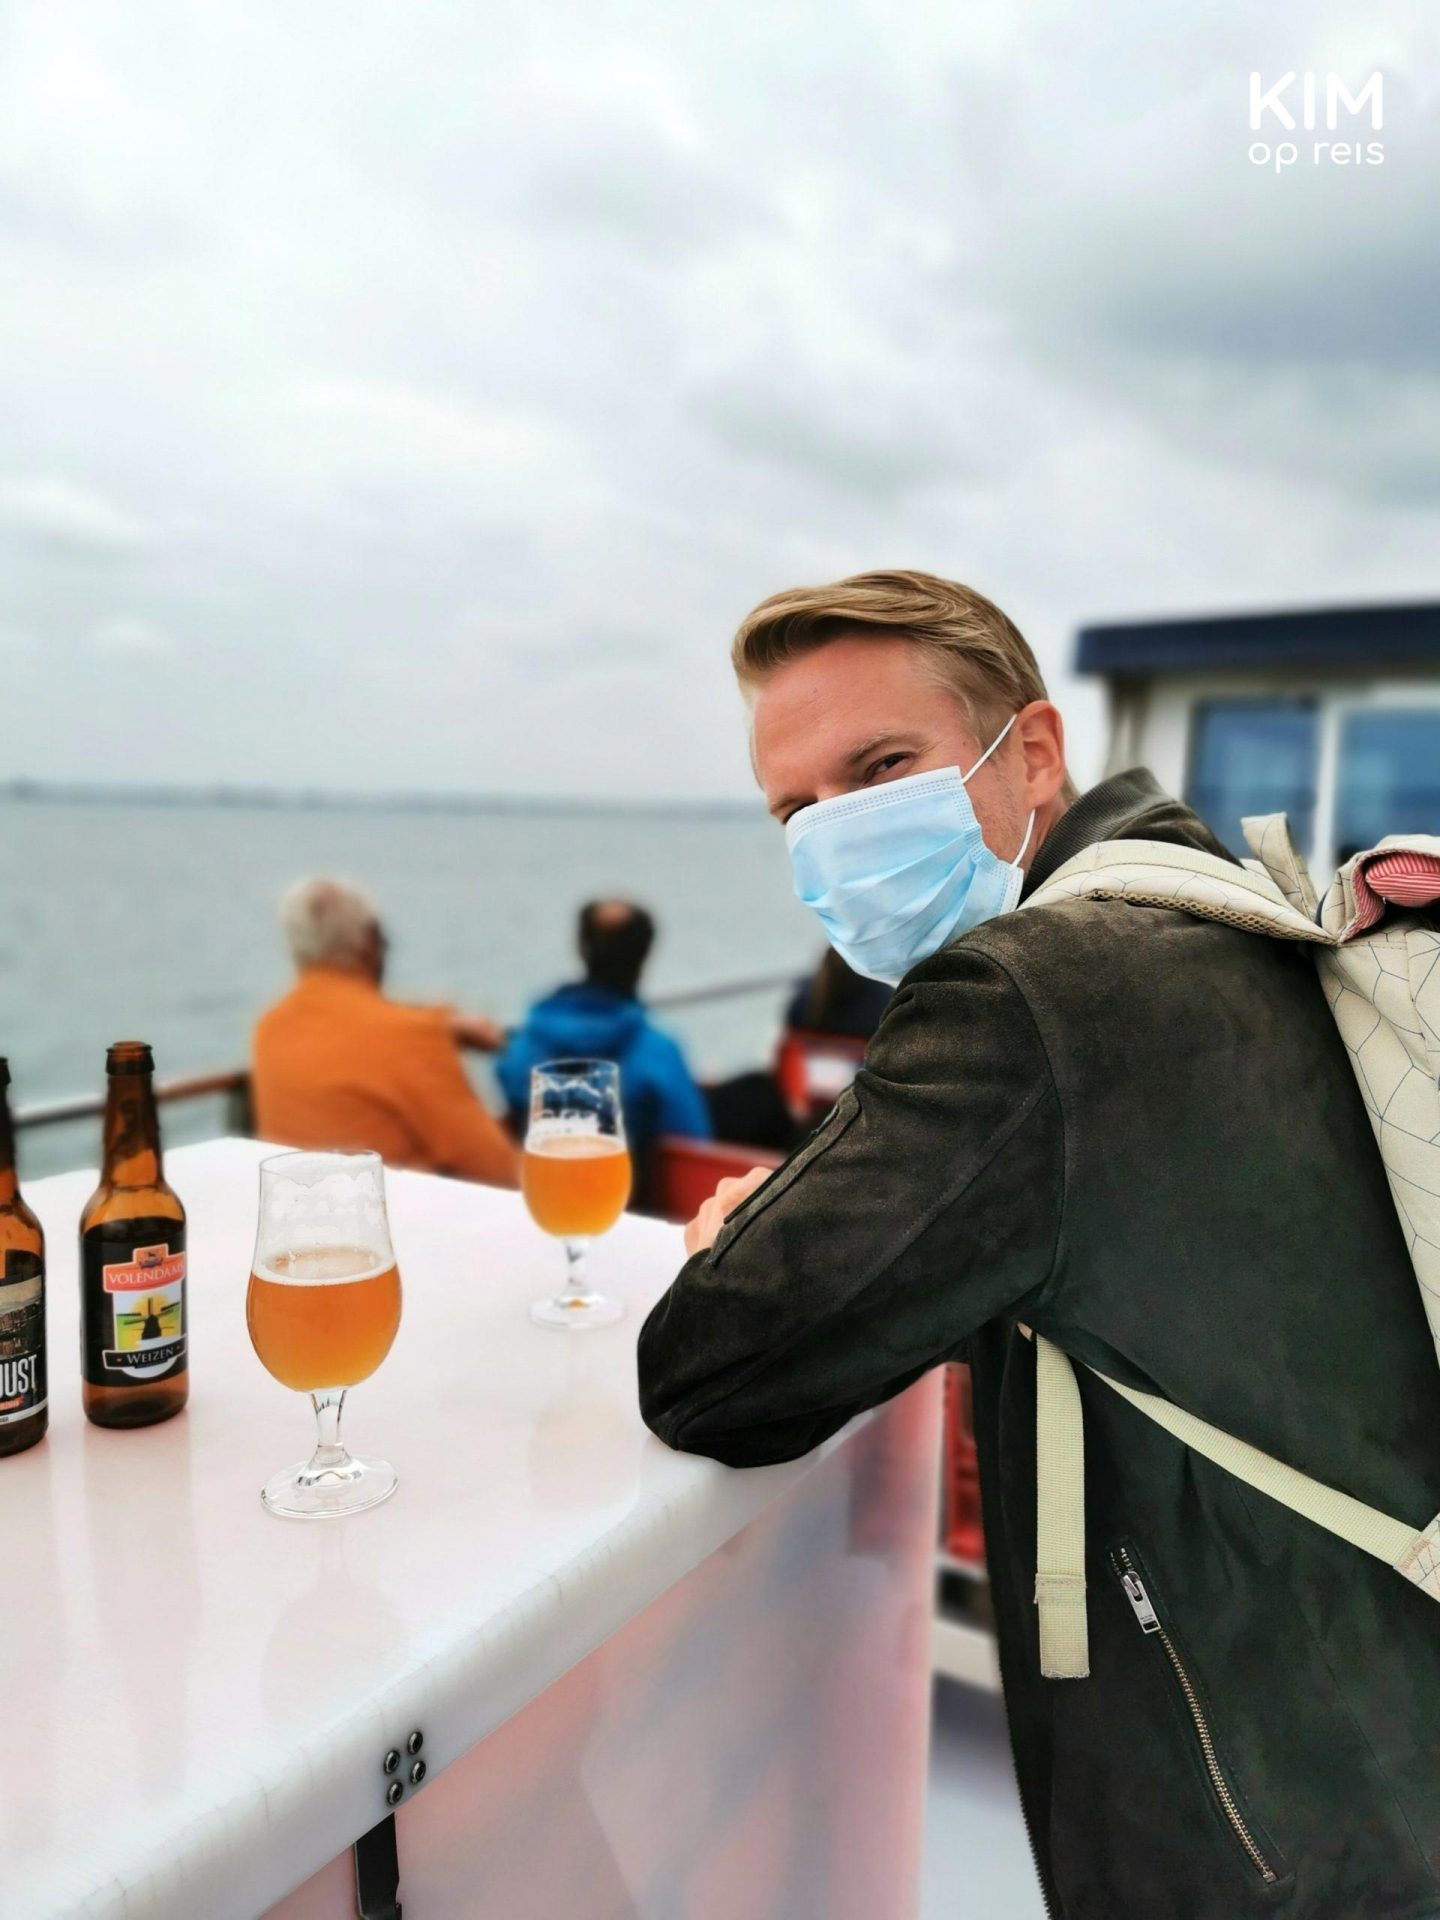 Drinking beer on the Marken Express - Patrick leans on the boat with a mouth mask on; there are two beers in front of him